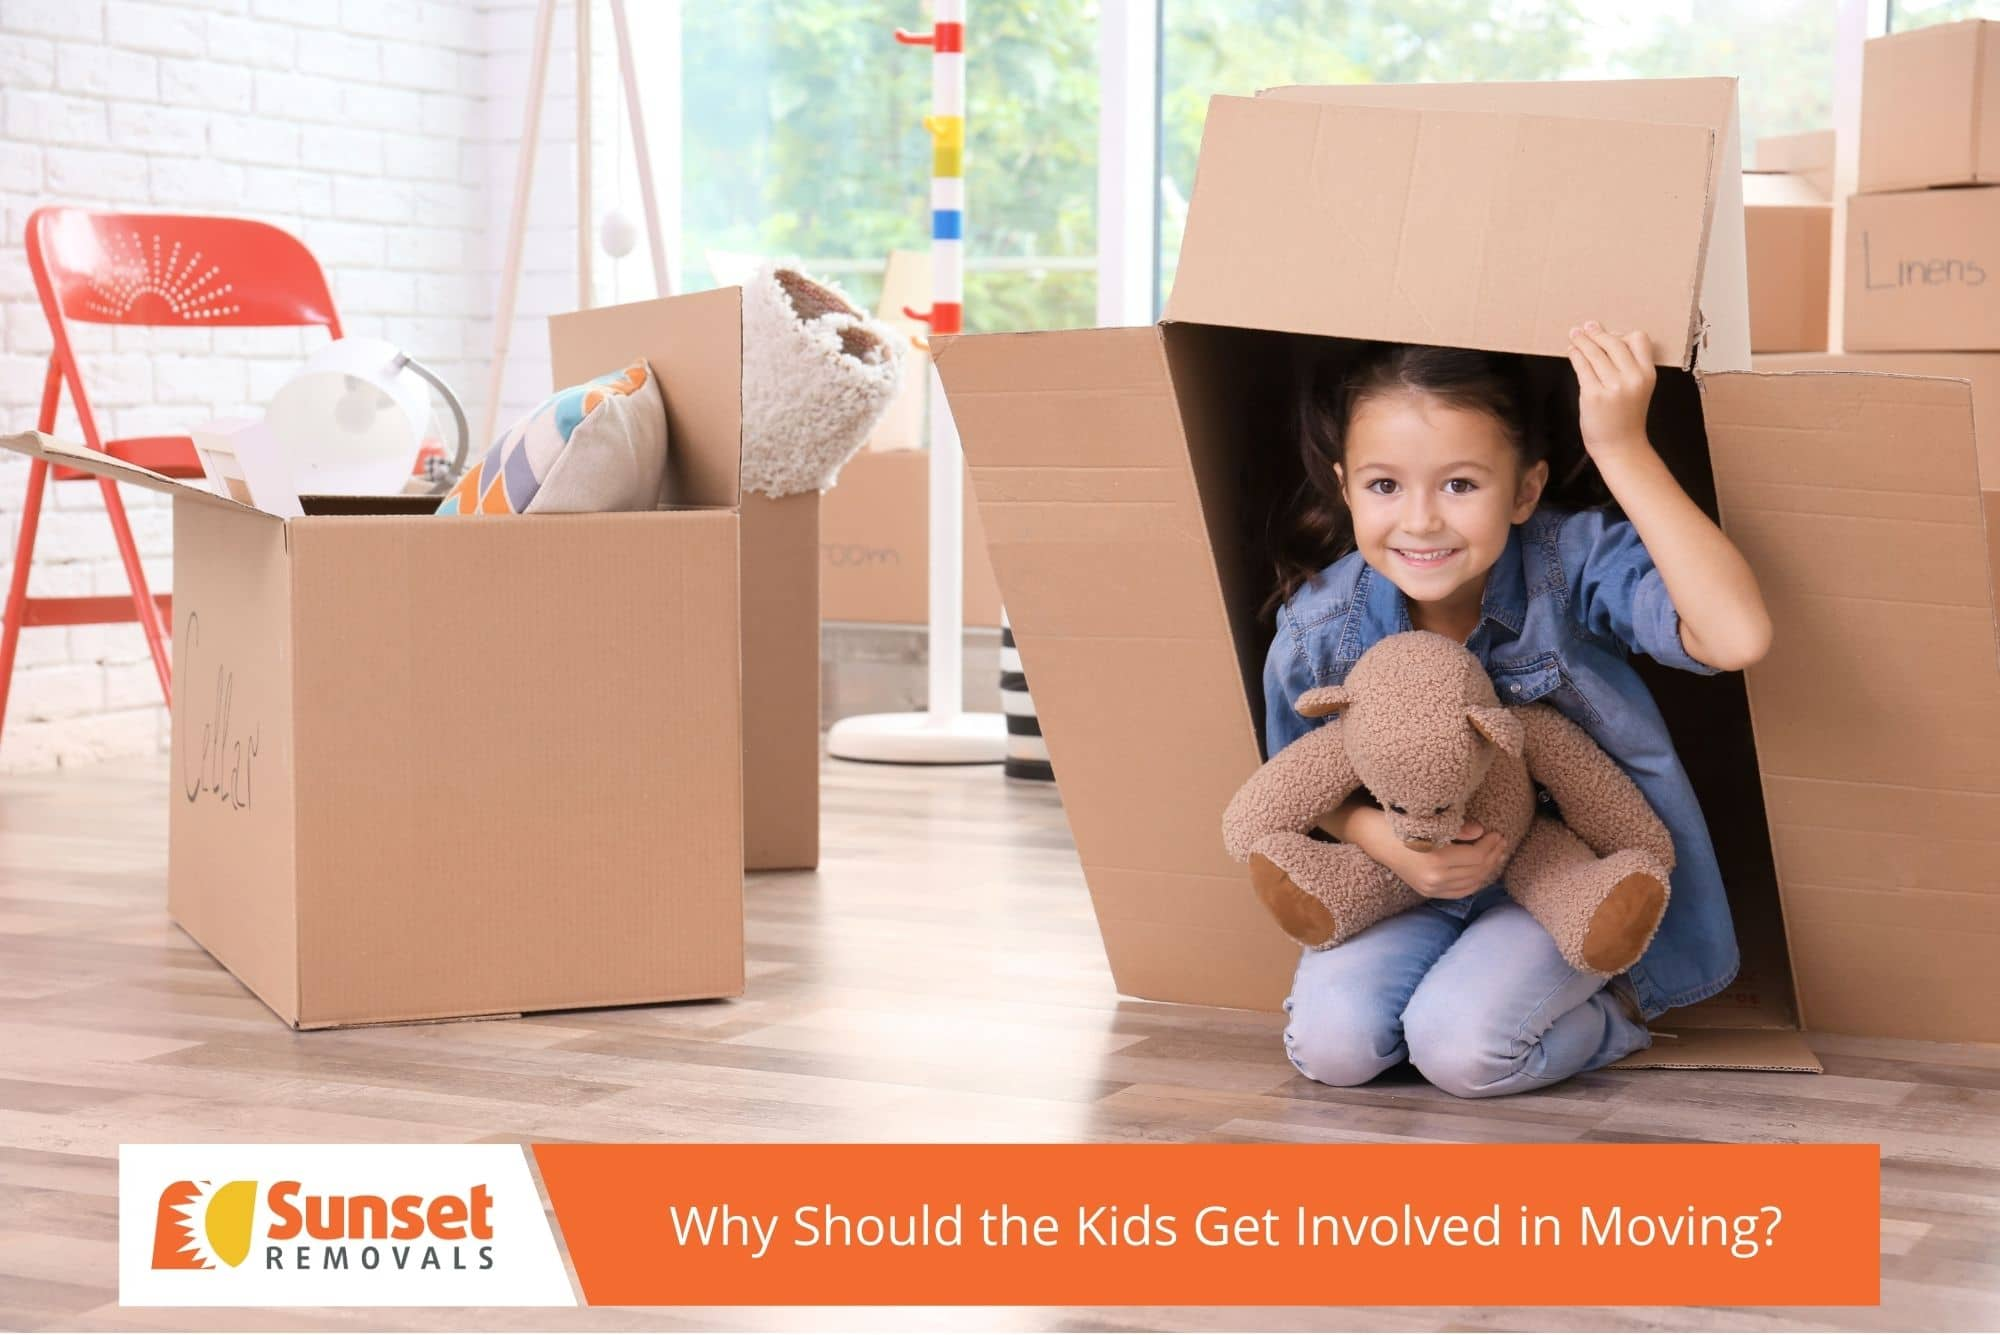 Why Should the Kids Get Involved in Moving?